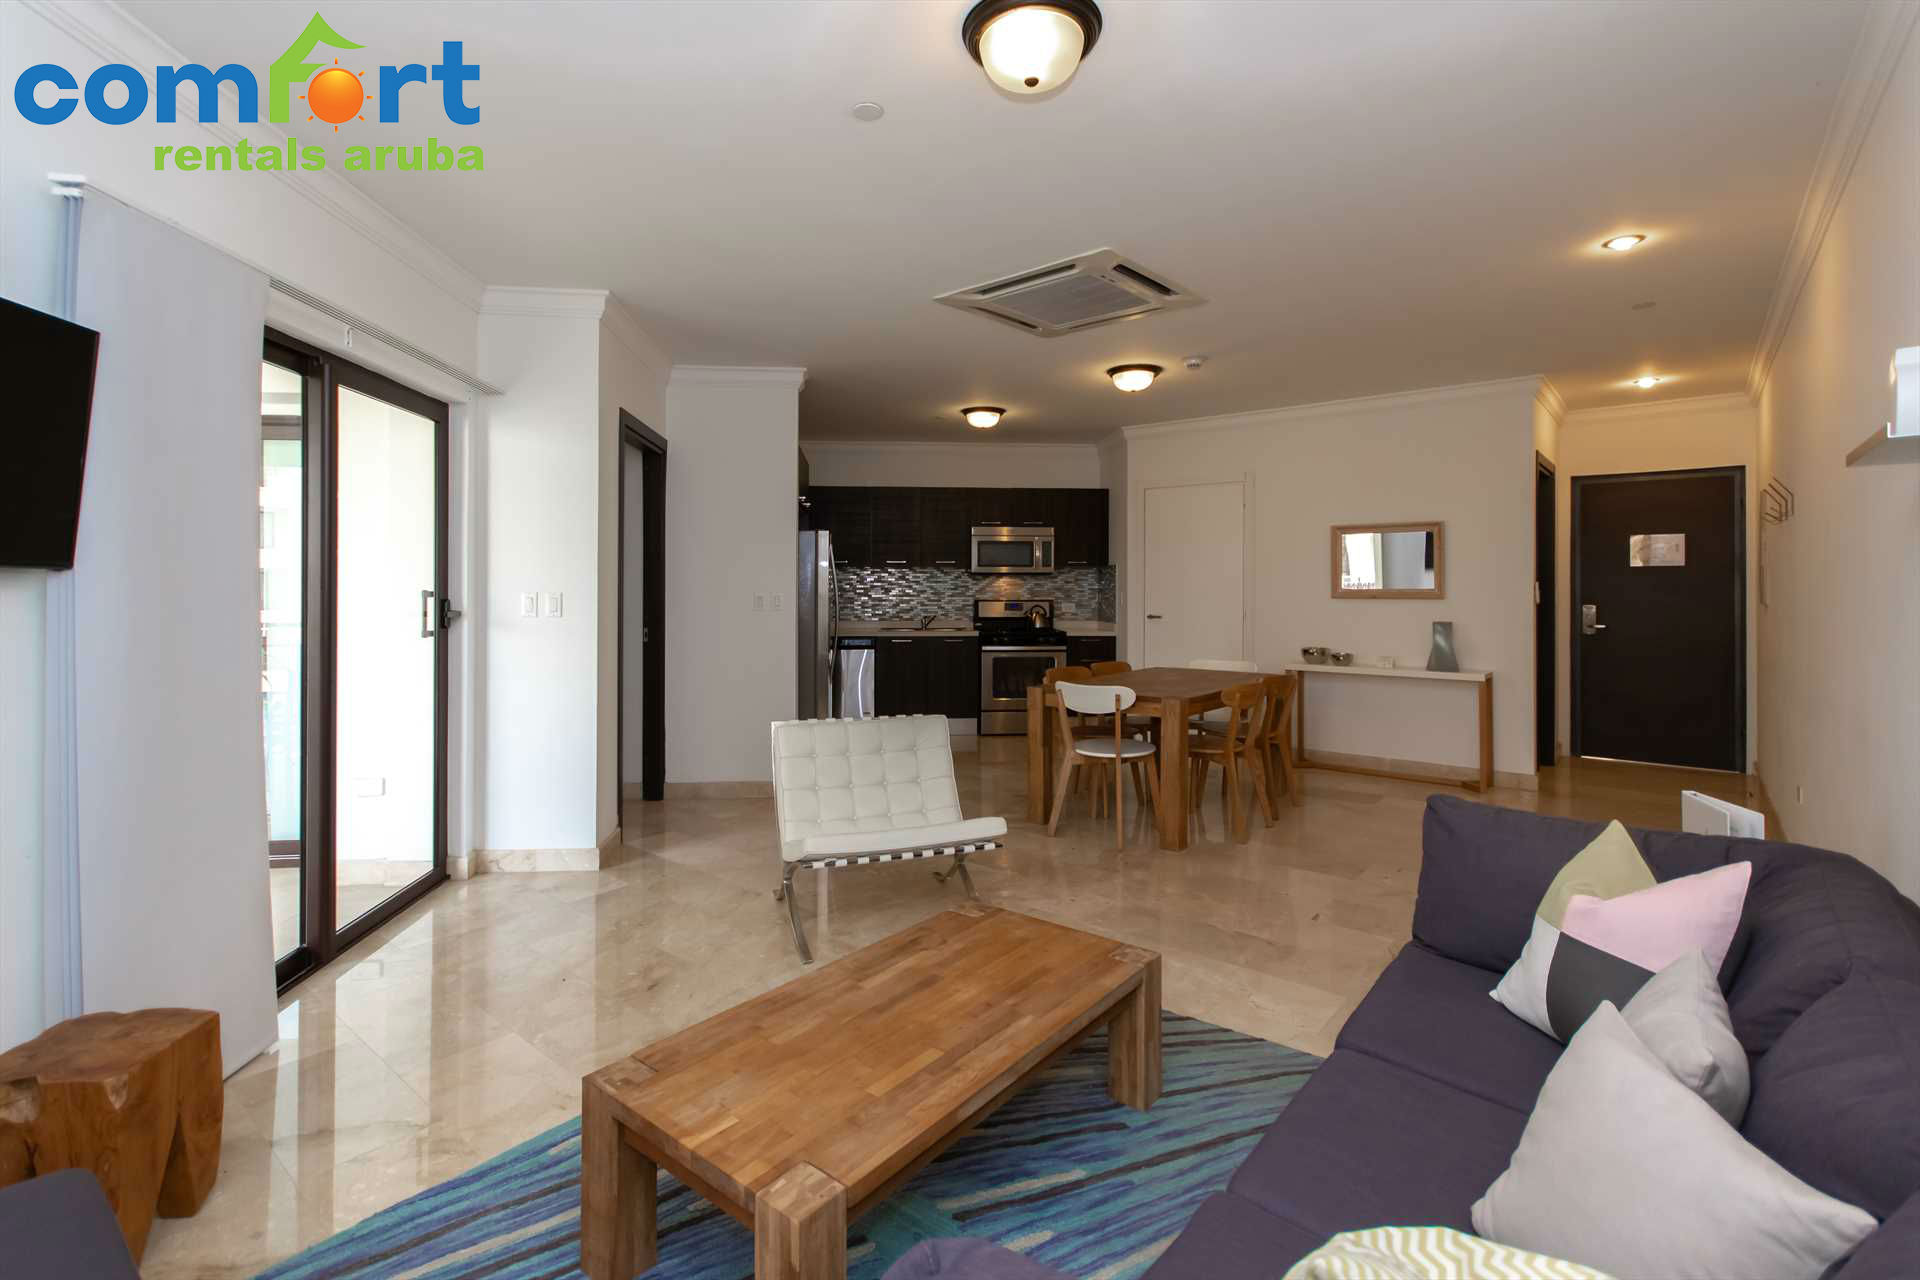 The open plan living area will make you feel right at home